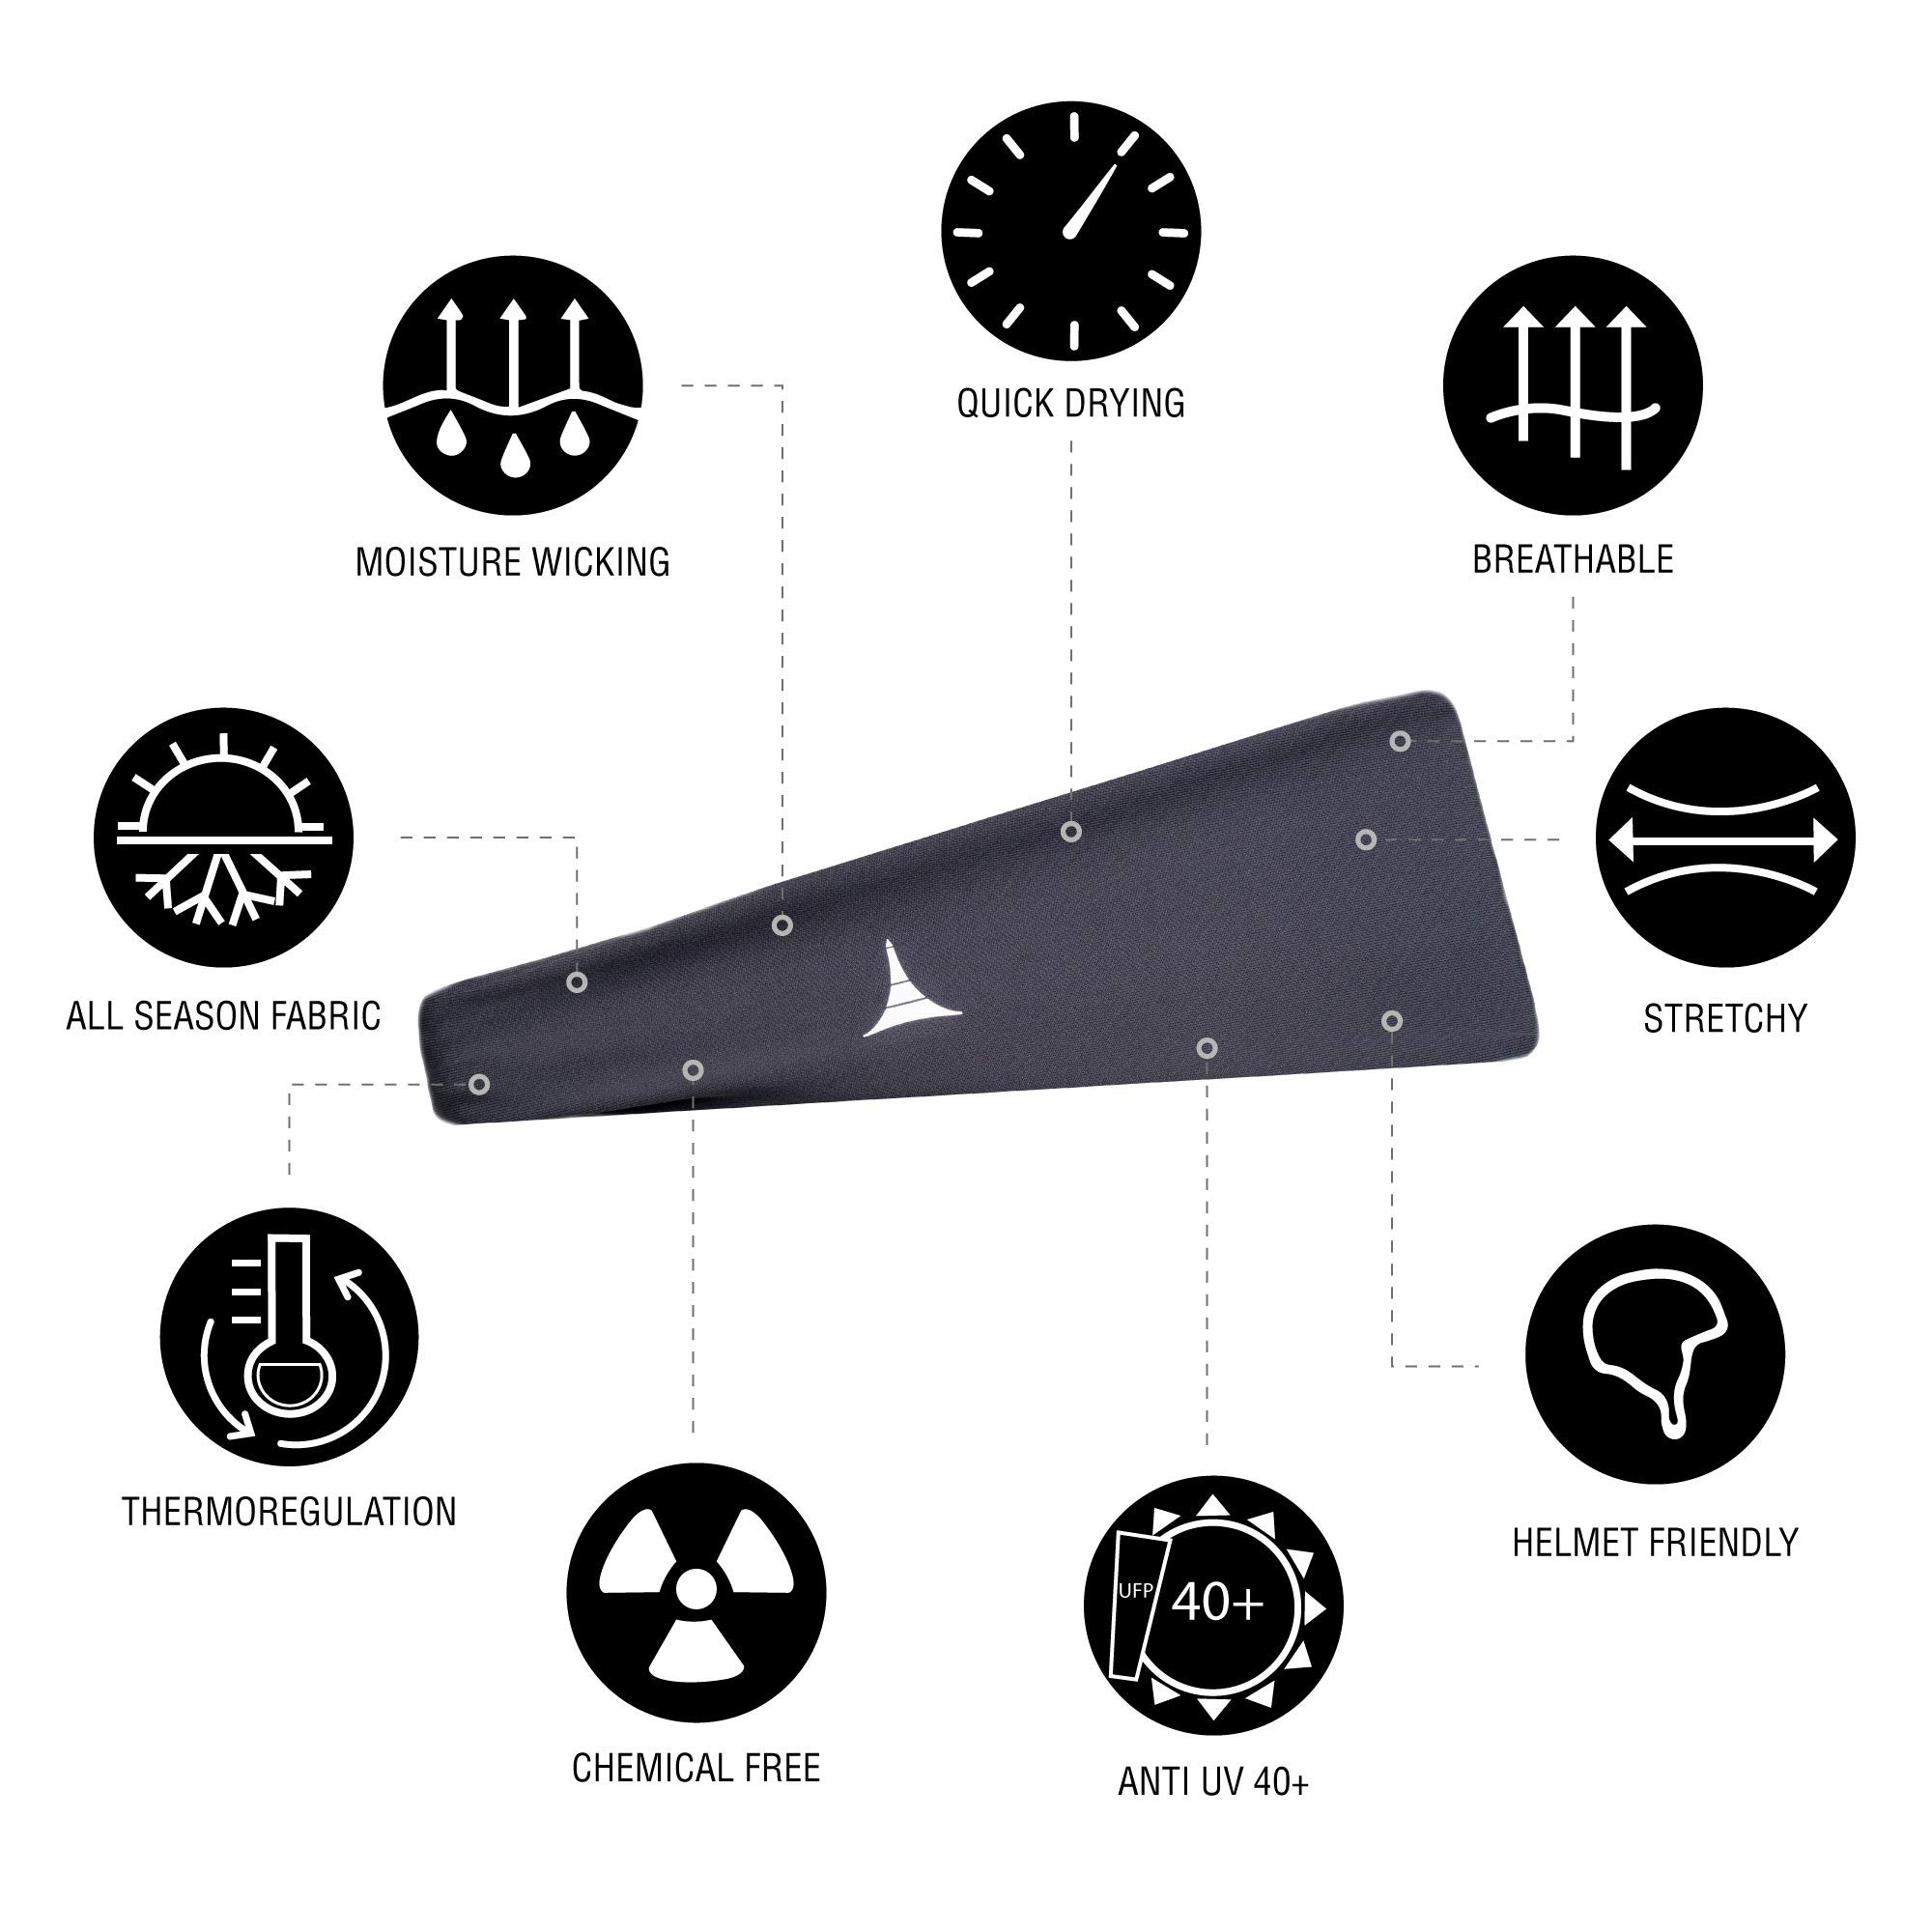 French Fitness Revolution Mens Headband - Guys Sweatband & Sports Headband for Running, Crossfit, Working Out and Dominating Your Competition - Performance Stretch & Moisture Wicking by French Fitness Revolution (Image #6)